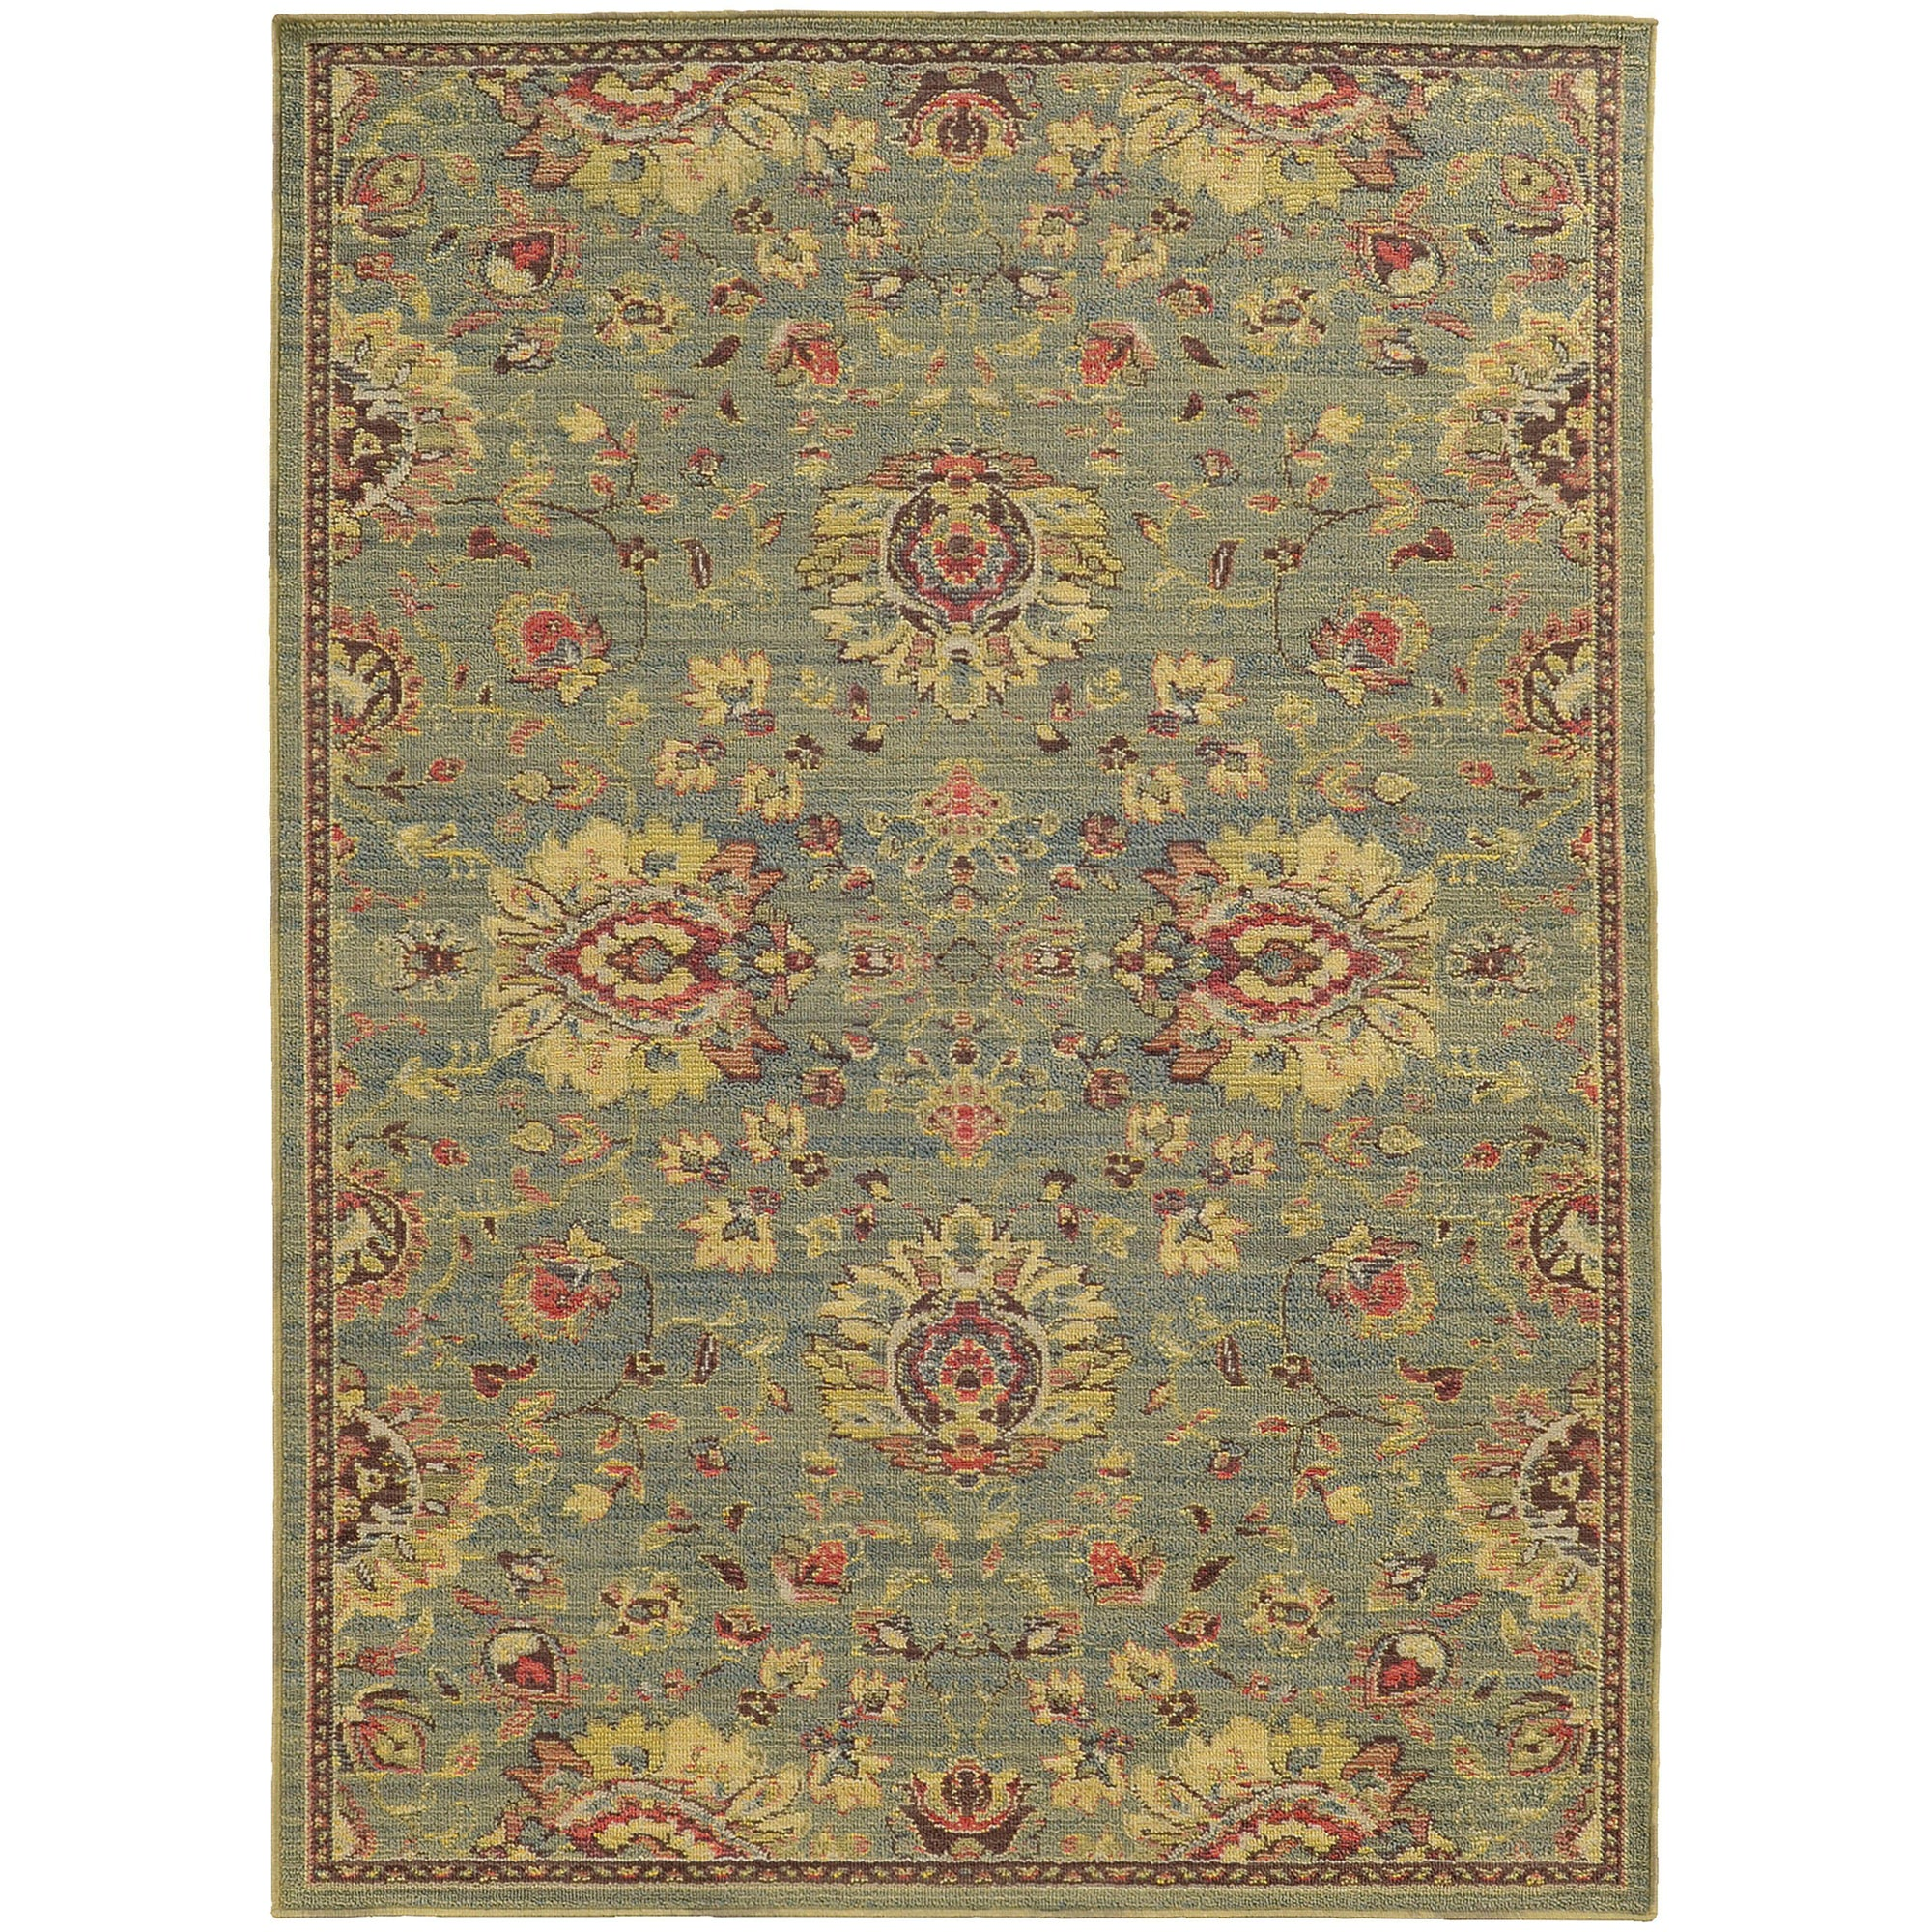 "Tommy Bahama Home Cabana 2l Blue/Beige-Area Rug-Tommy Bahama Home-3'10"" X 5' 5""-The Rug Truck"